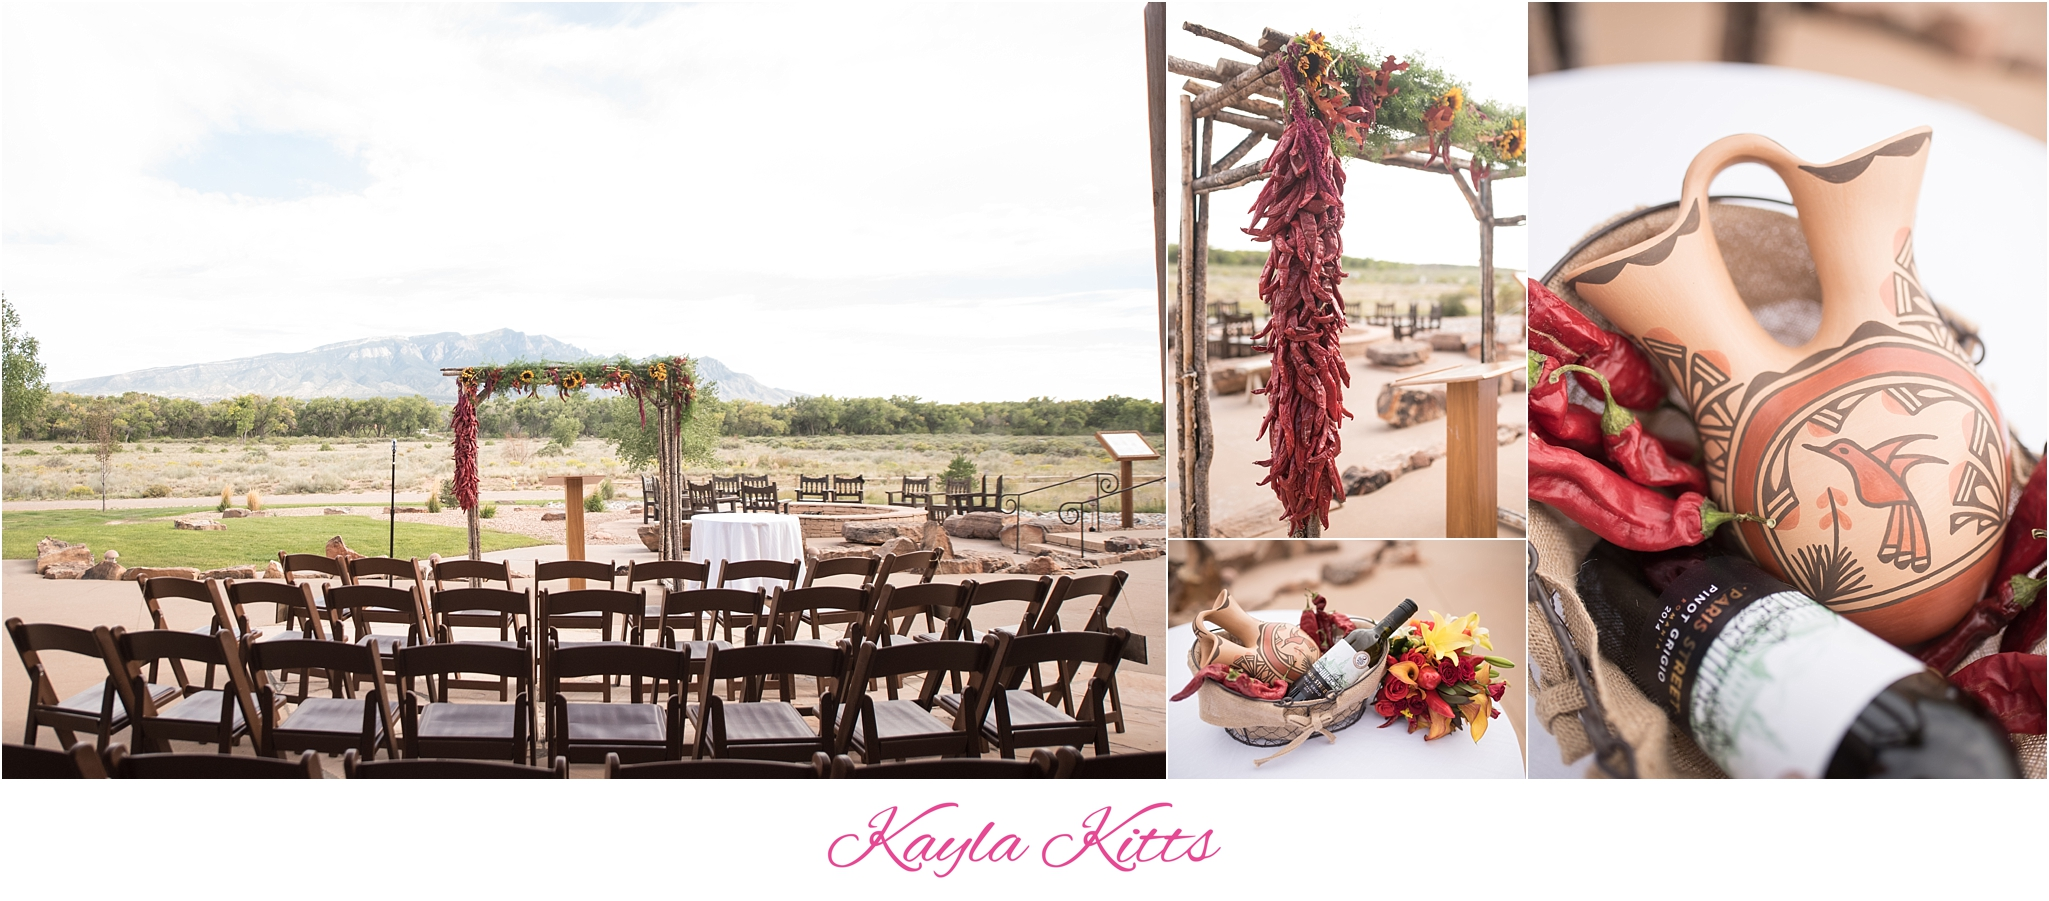 kayla kitts photography - albuquerque wedding photographer - albuquerque wedding photography - albuquerque venue - hyatt tamaya - hyatt tamaya wedding - new mexico wedding photographer_0041.jpg